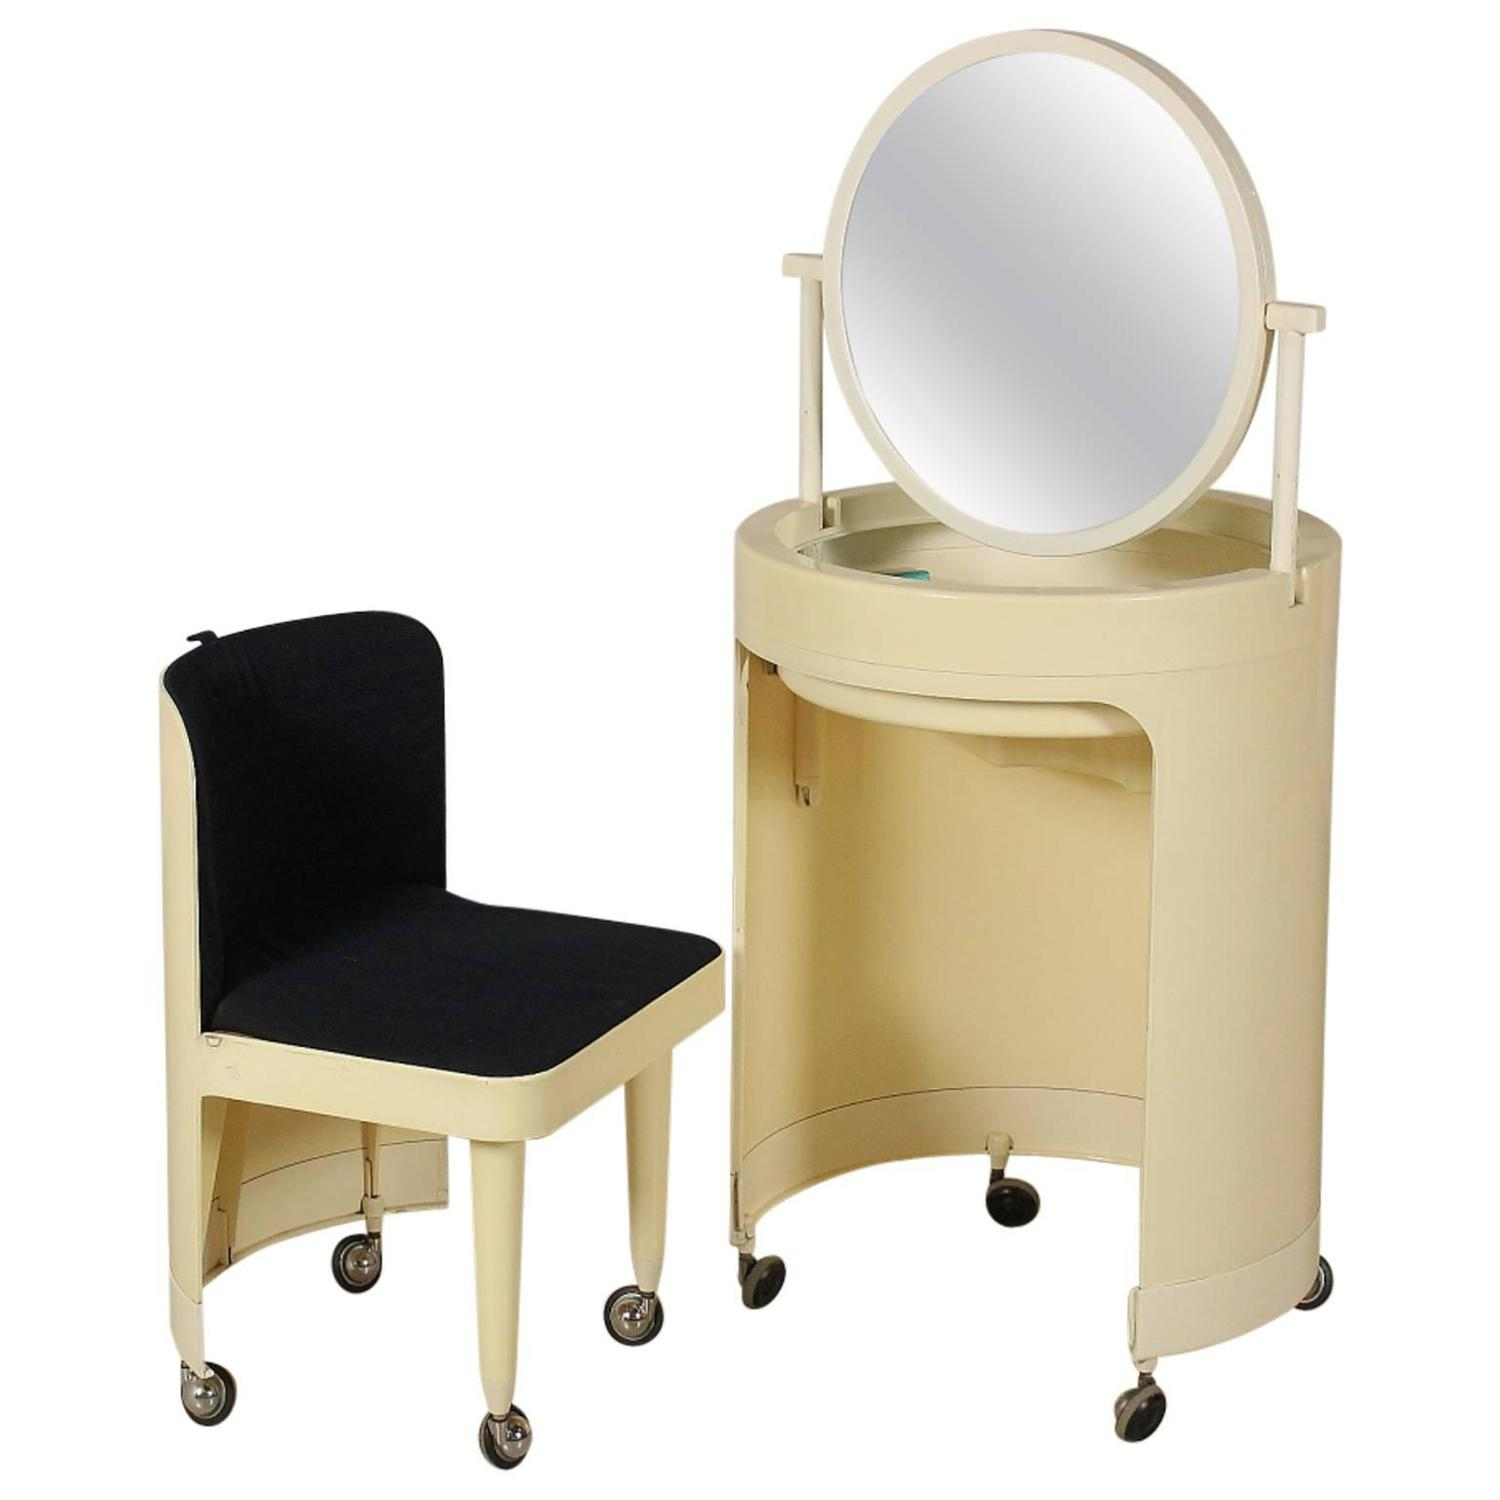 Plastic Dressing Table With Mirror Manufactured In Italy 1970s At 1stdibs